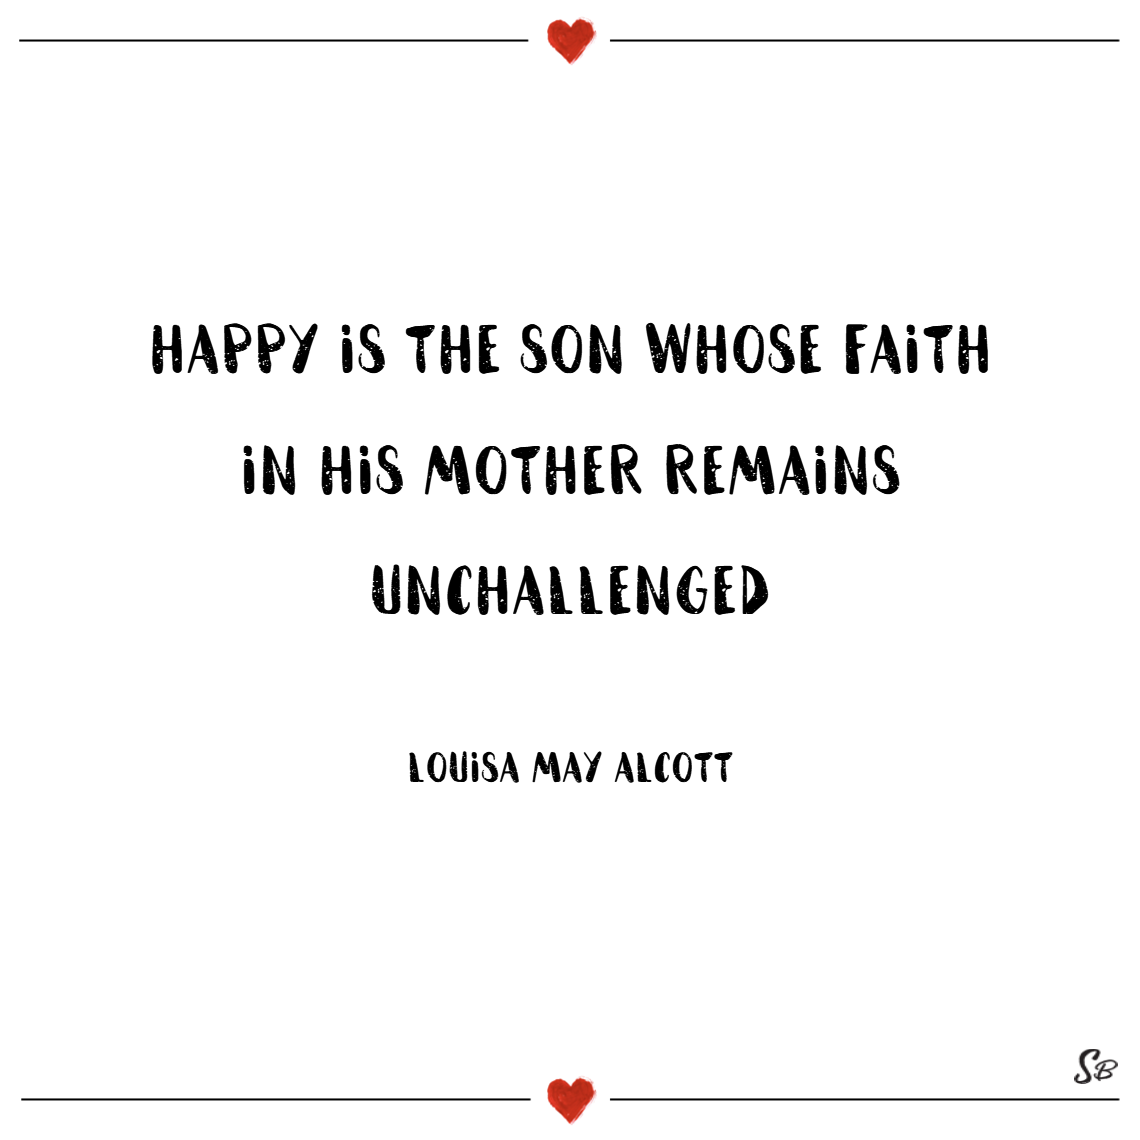 Happy is the son whose faith in his mother remains unchallenged. – louisa may alcott